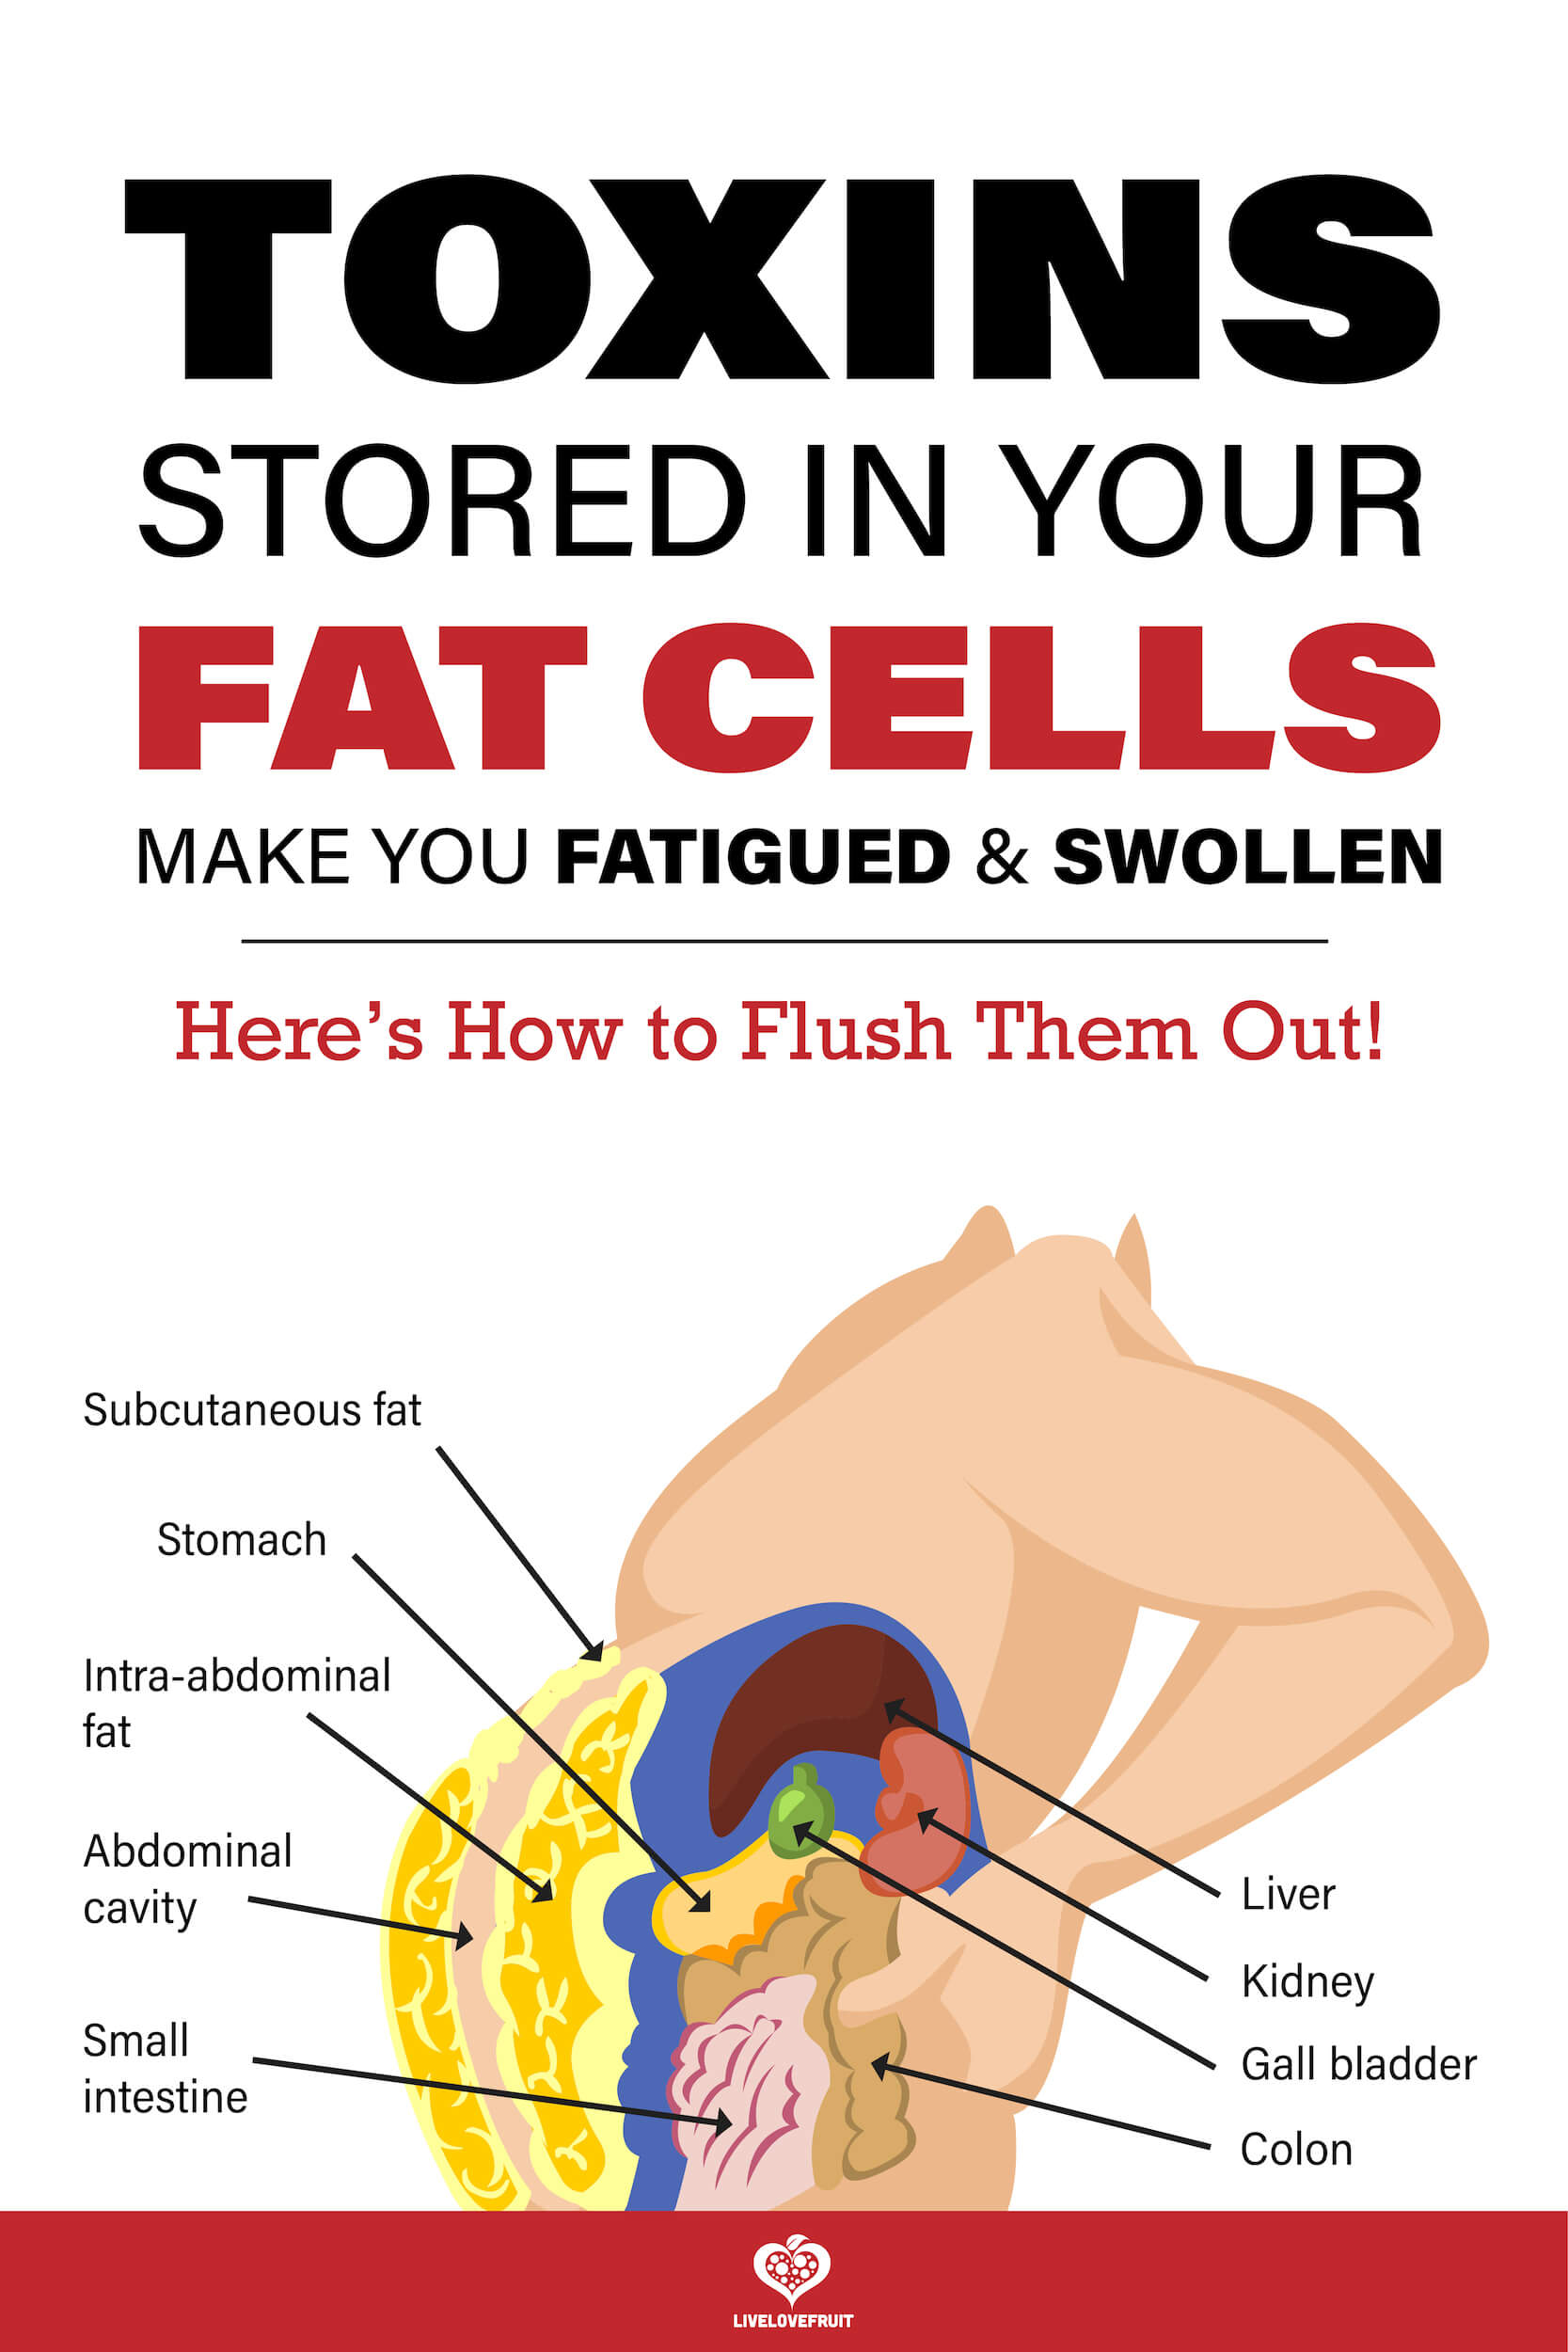 visual illustration of toxins stored in fat cells in body with text - toxins stored in your fat cells make you fatigued & swollen. Here's how to flush them out!